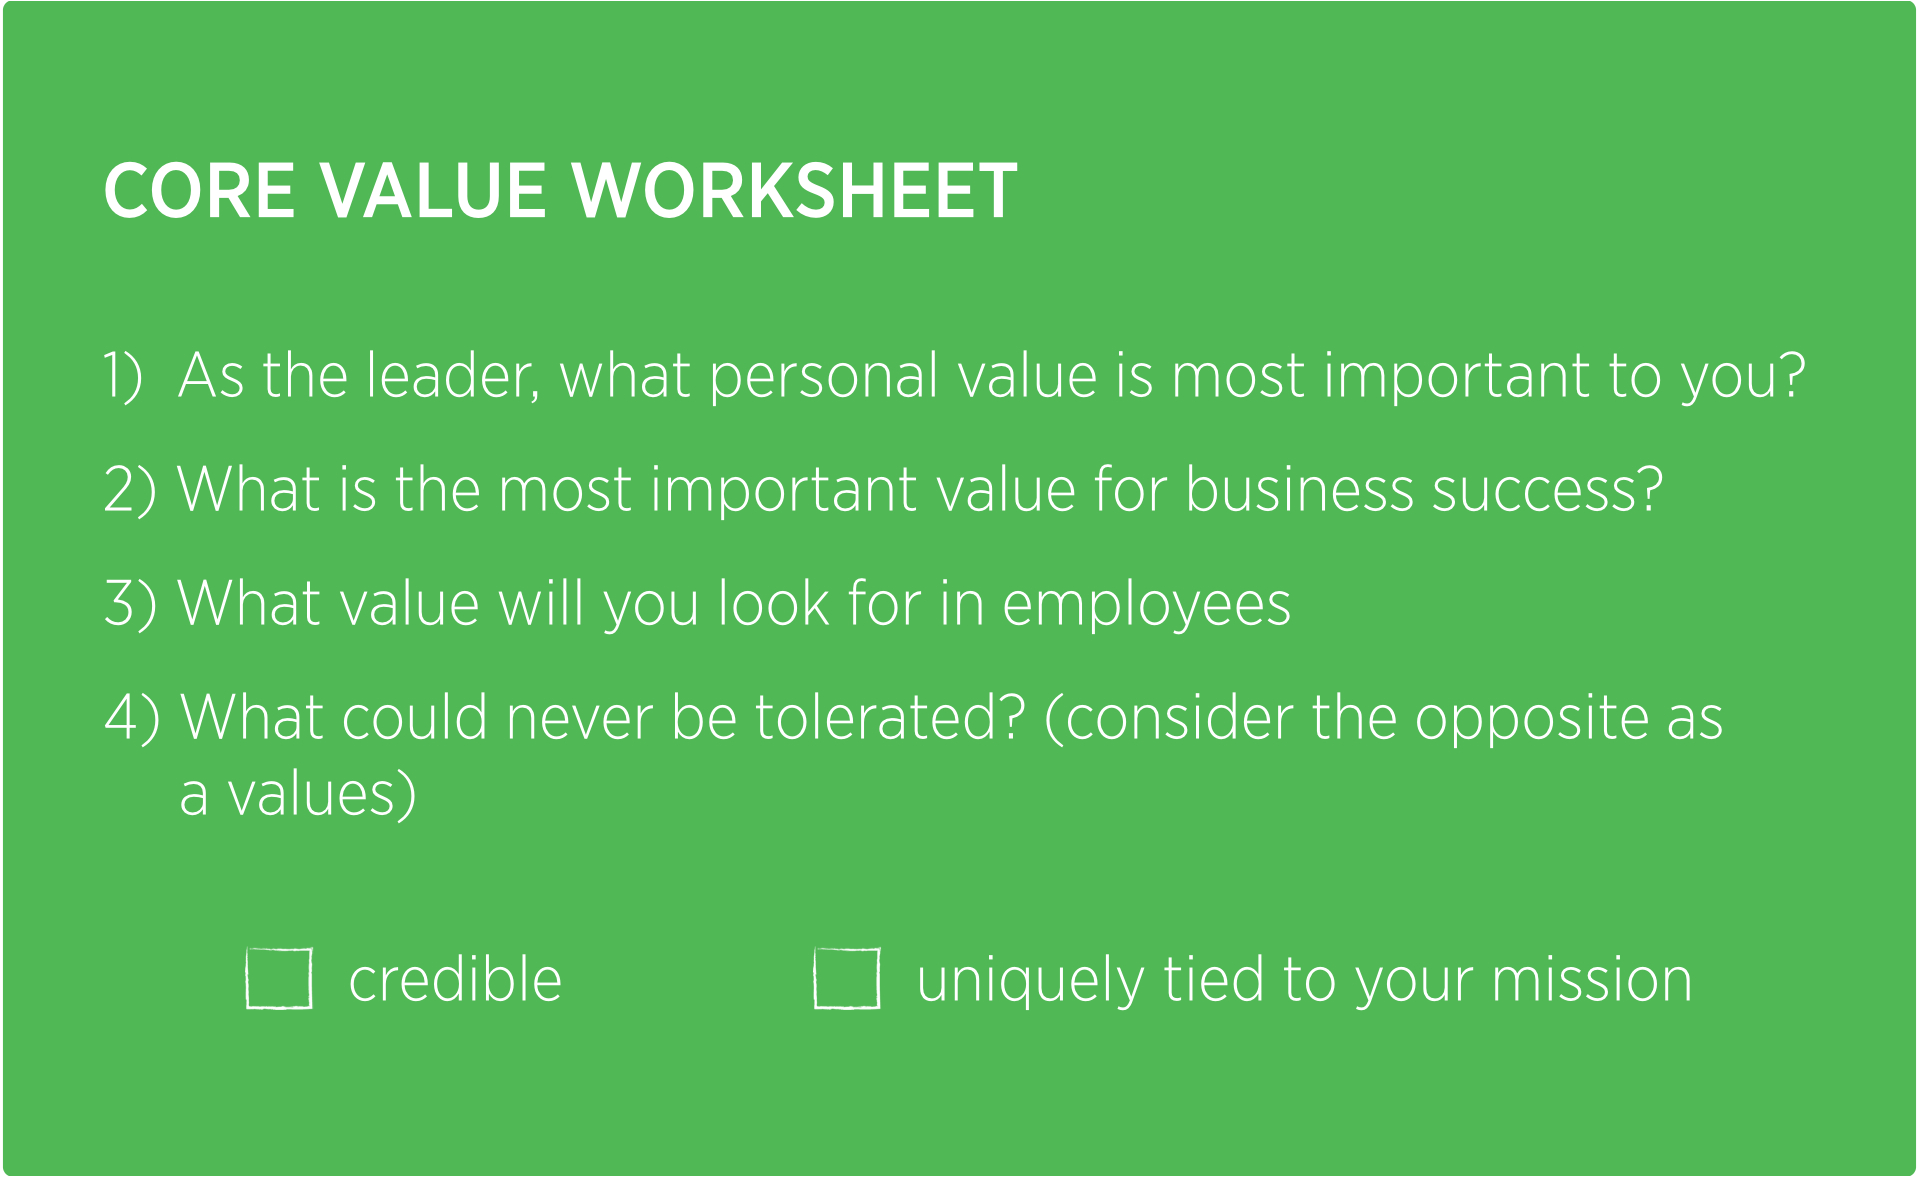 worksheet Personal Values Worksheet sequoia on twitter worksheet for defining your companys core values alfred lin at stanford cs183 httpt coxlcosi3z7s